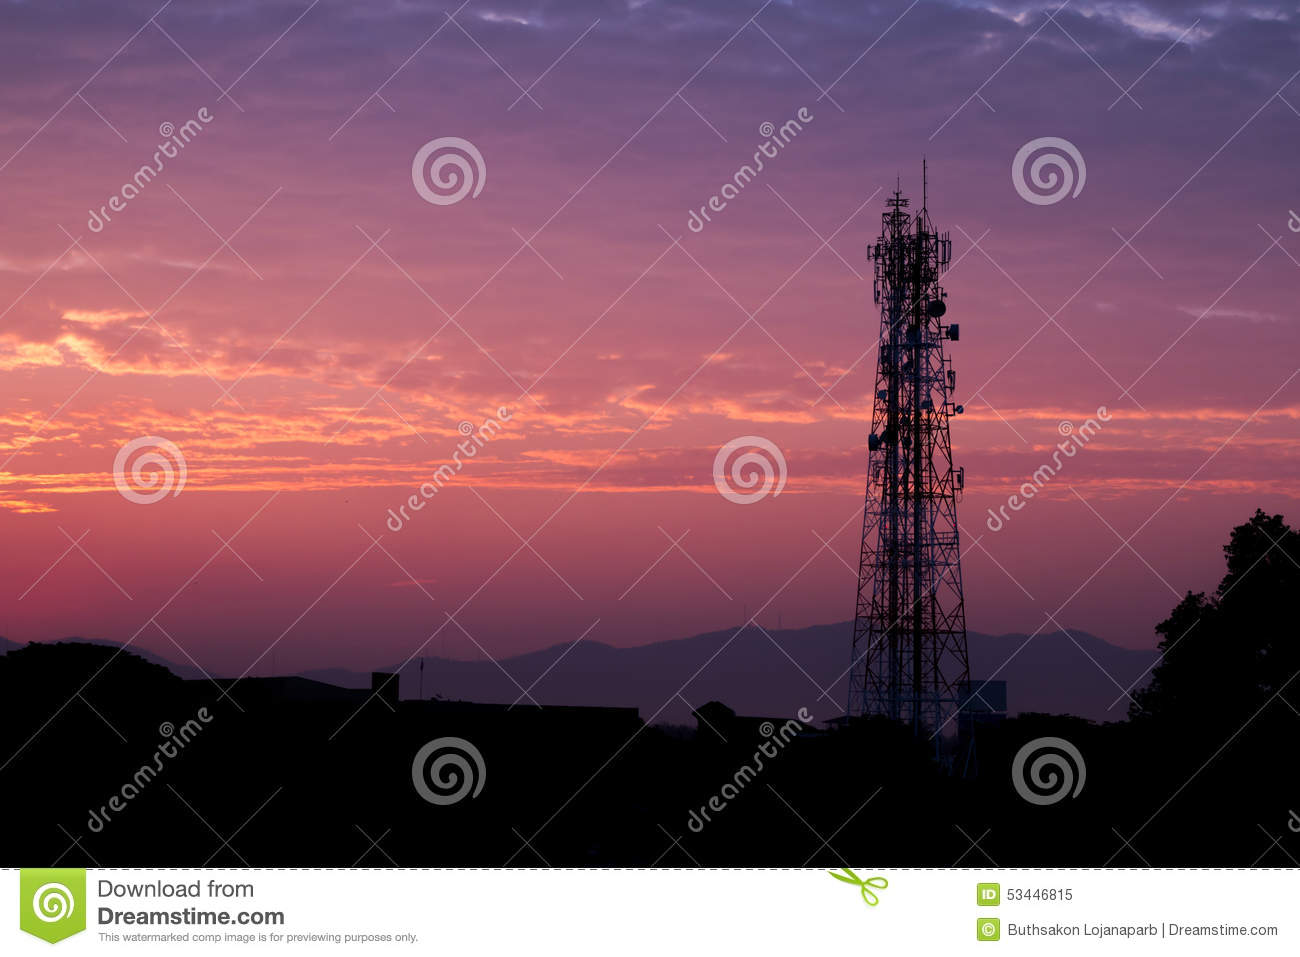 Silhouettes telecommunication tower at sunrise and twilight sky.